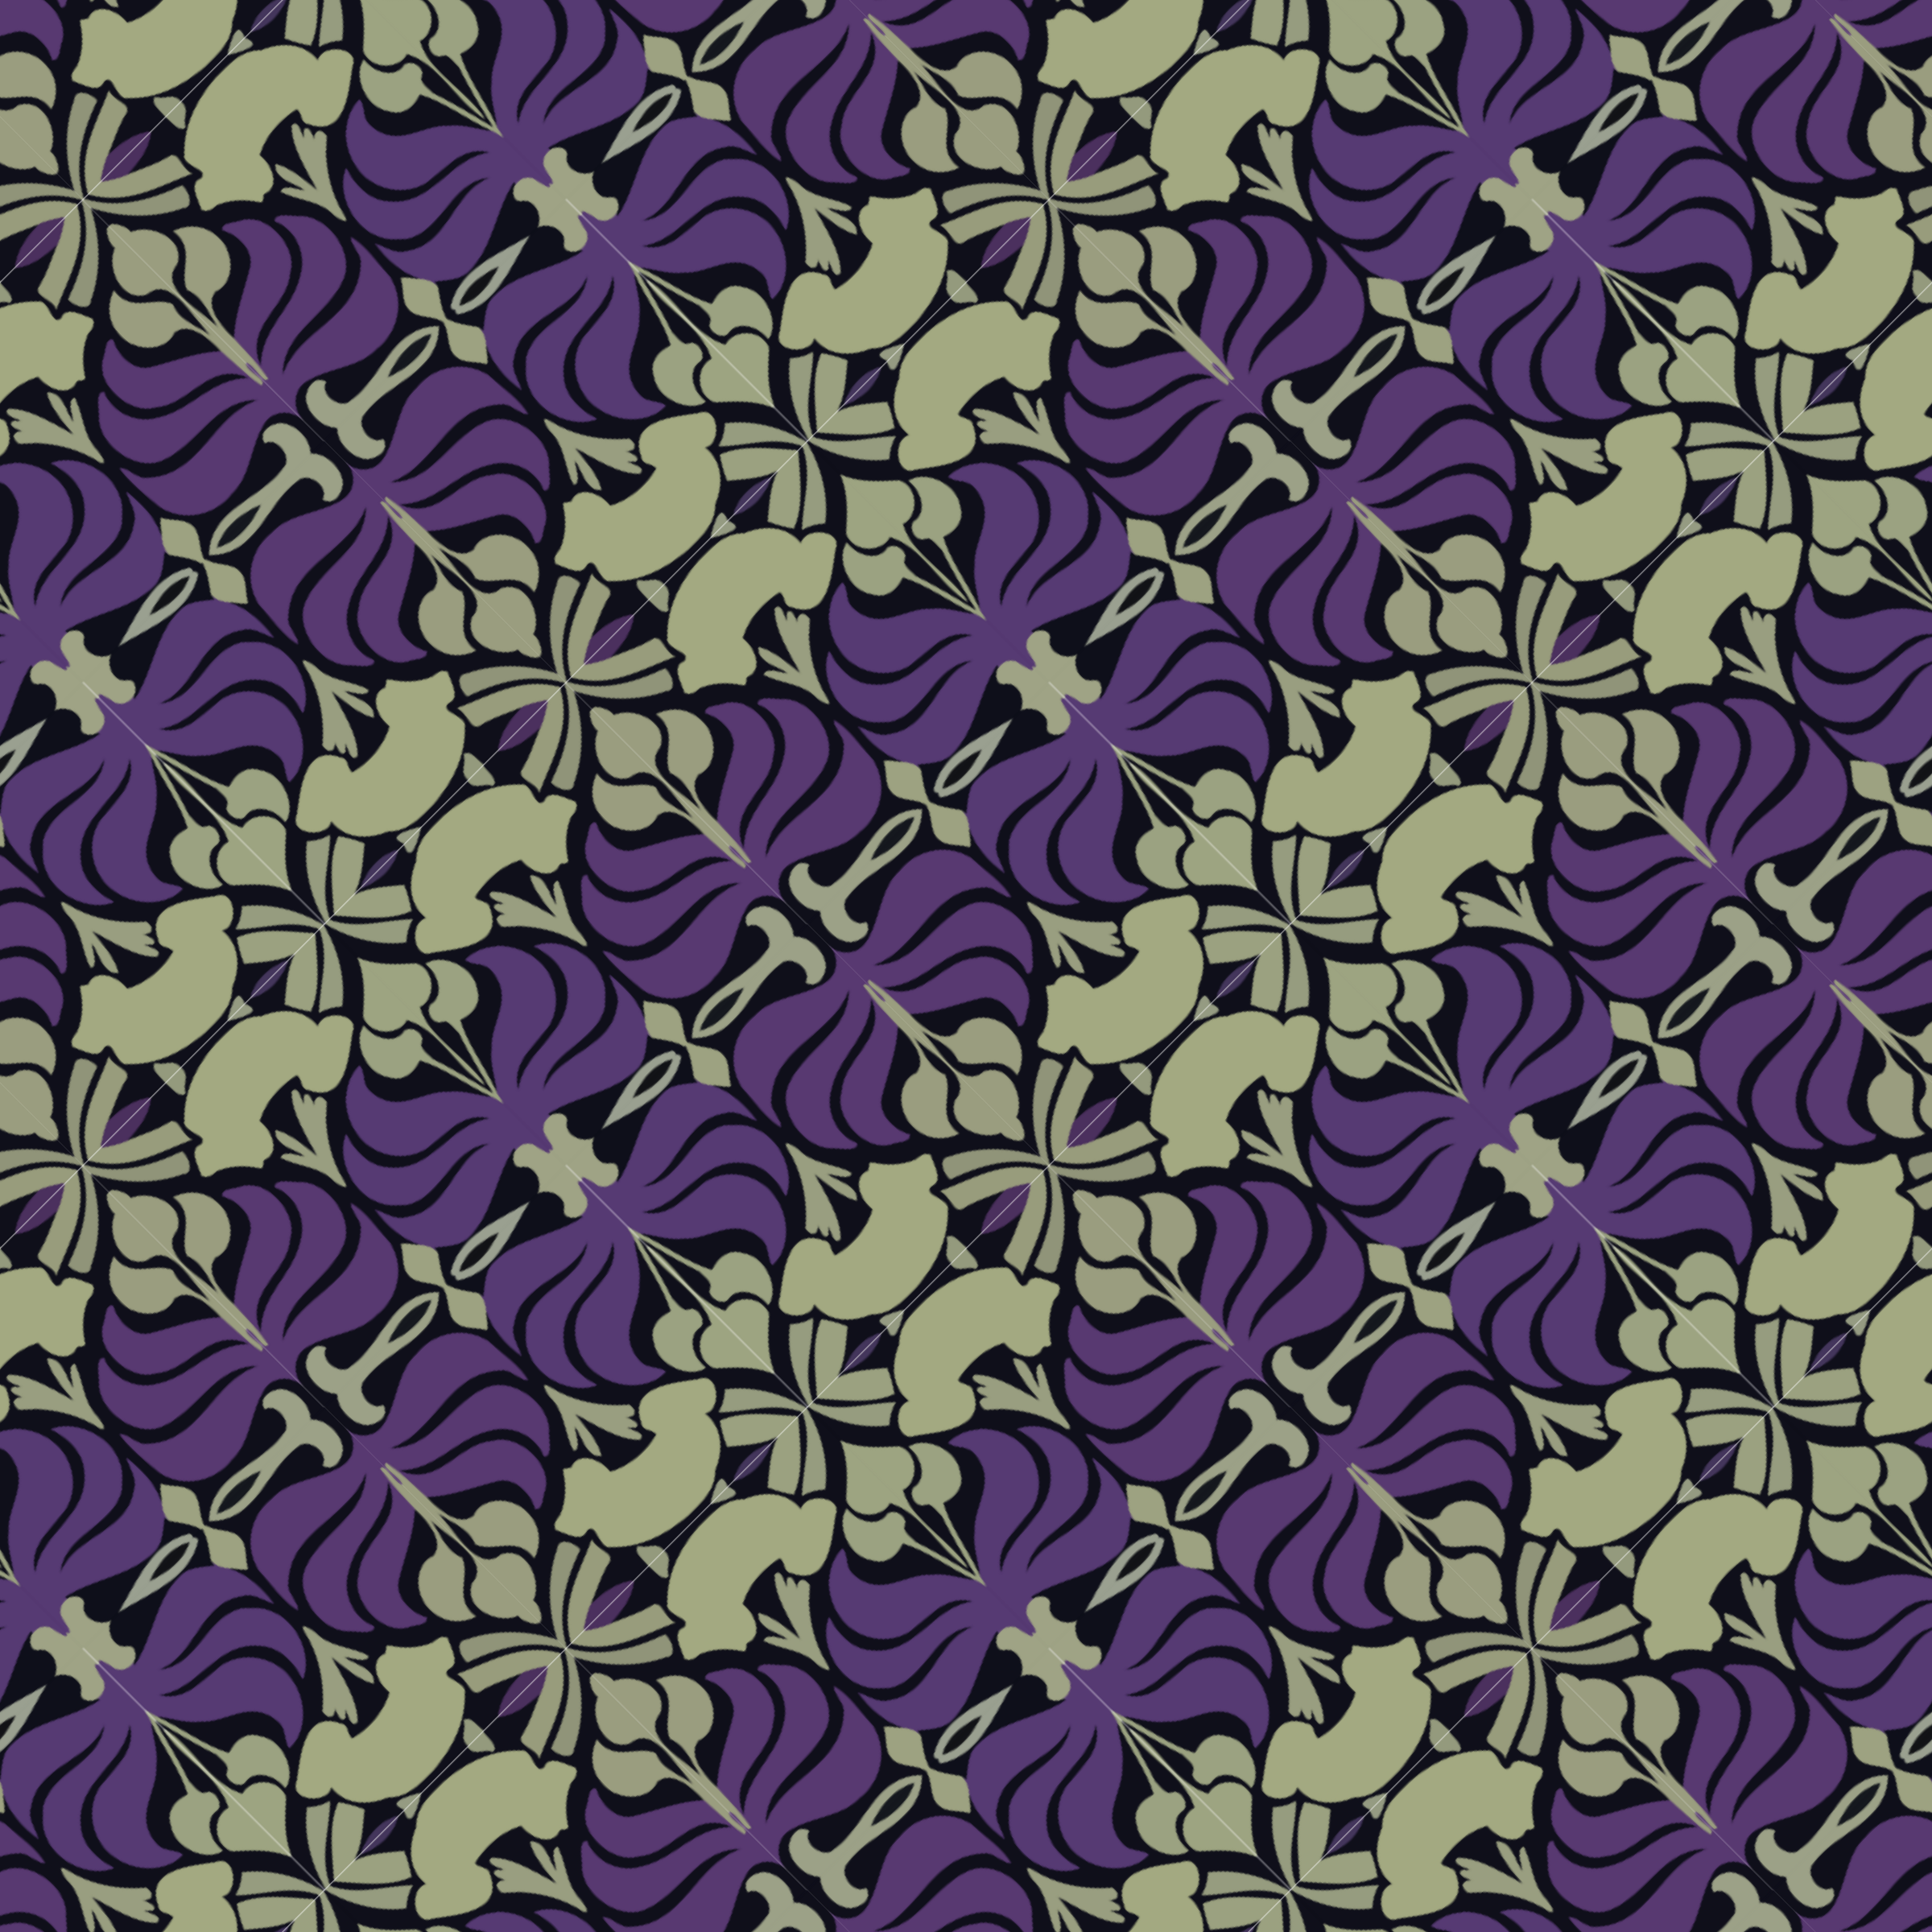 Background pattern 167 (colour 5) by Firkin